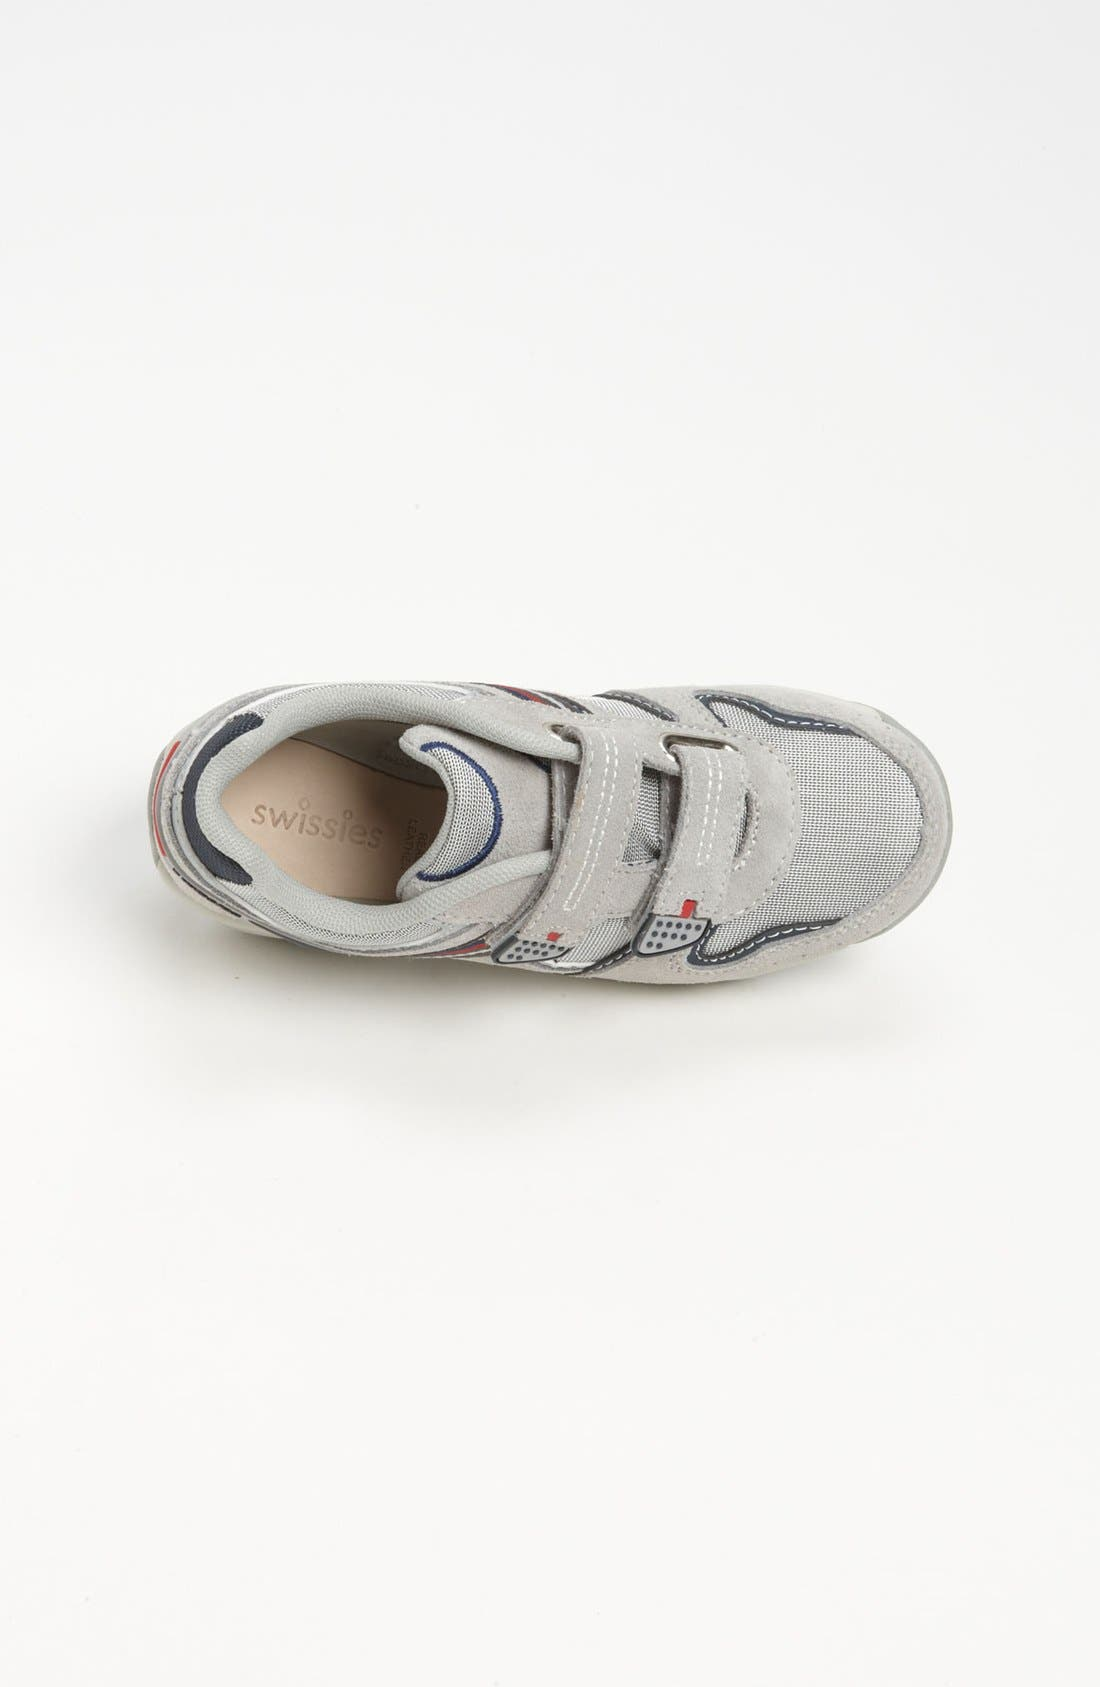 Alternate Image 3  - Swissies 'Terry' Sneaker (Toddler & Little Kid)